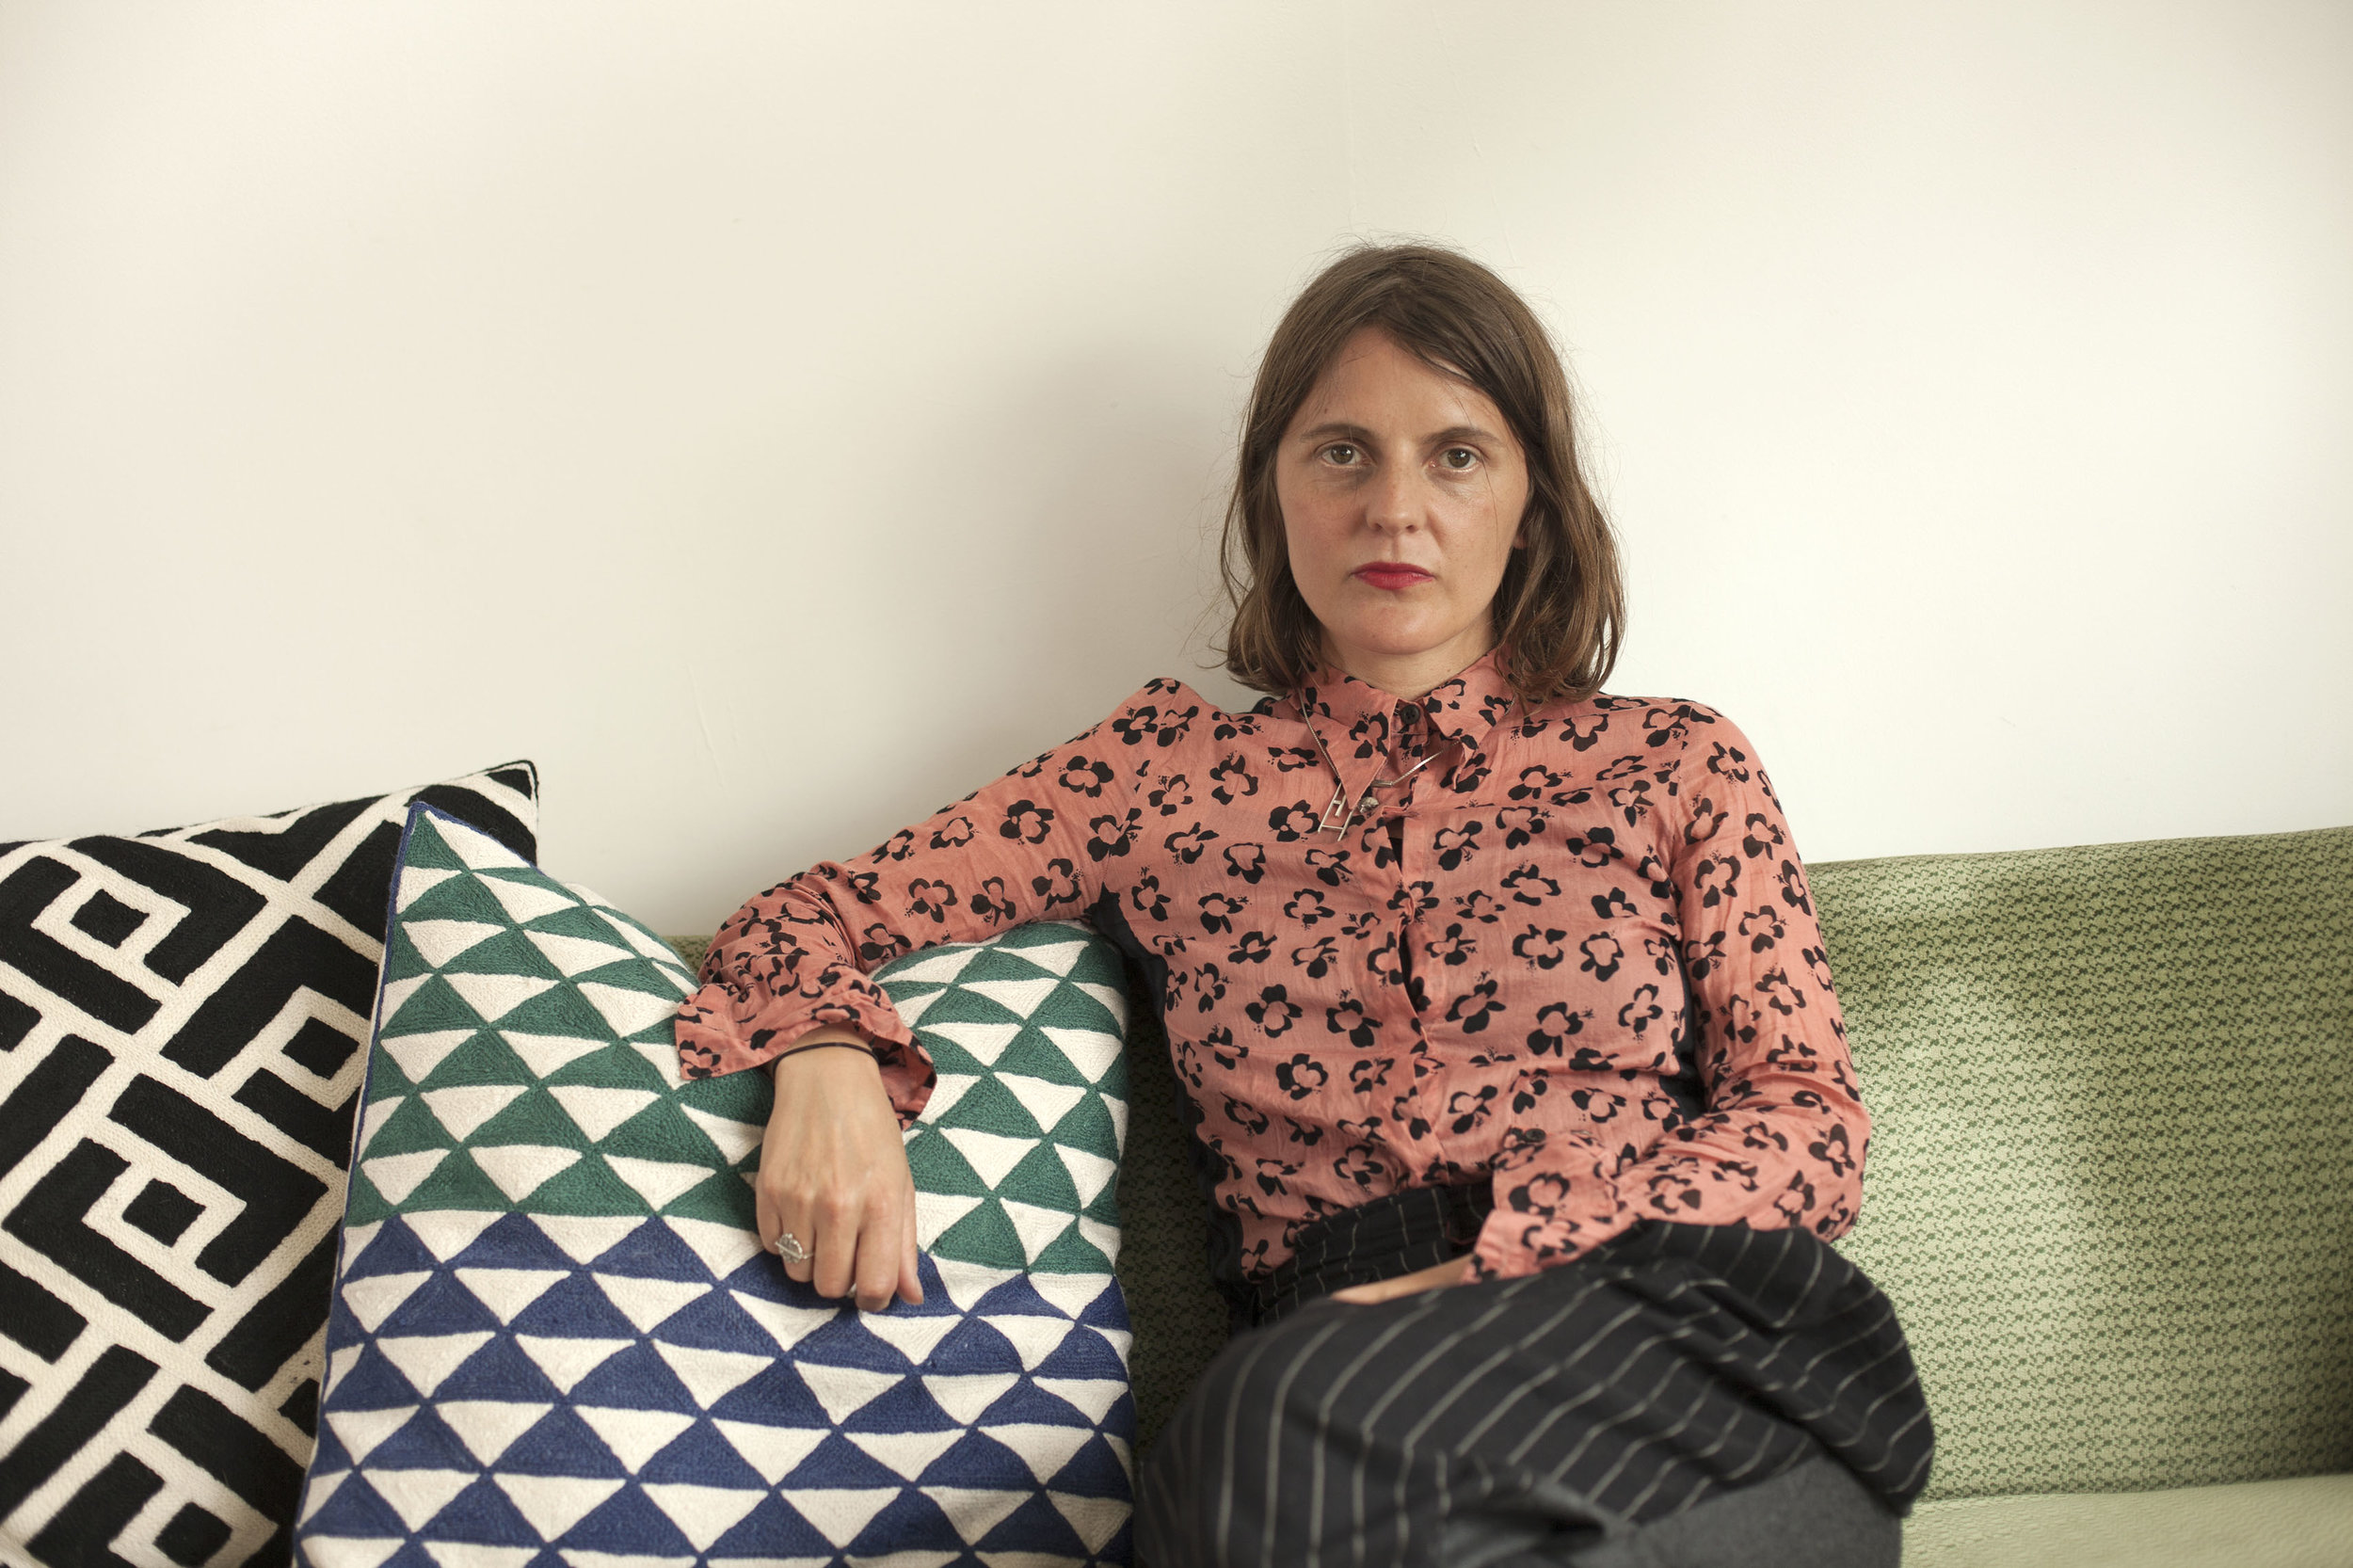 Noemi wears a pair of trousers by Stella McCartney, a Dries van Noten shirt, and her own jewelery.